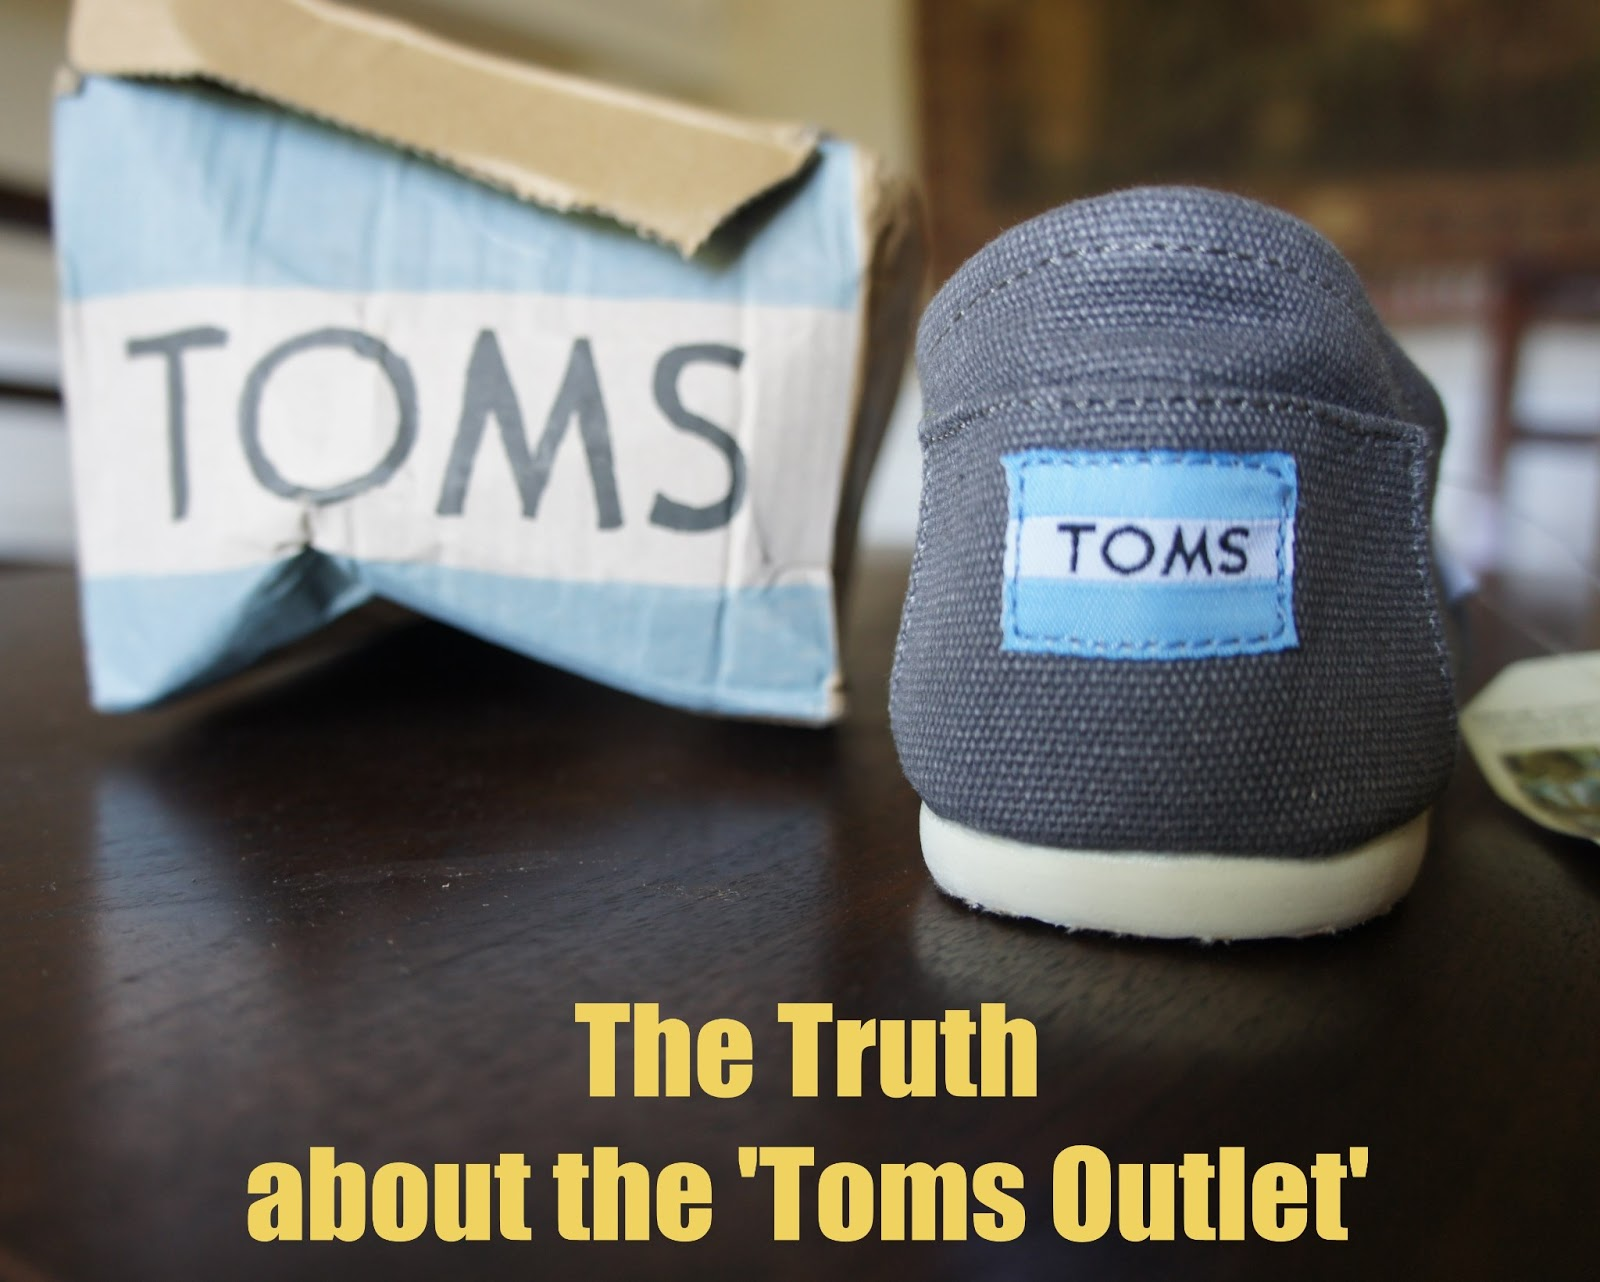 the maggie peach the toms outlet my experience rh maggiepeach blogspot com toms outlet mall toms outlet store uk